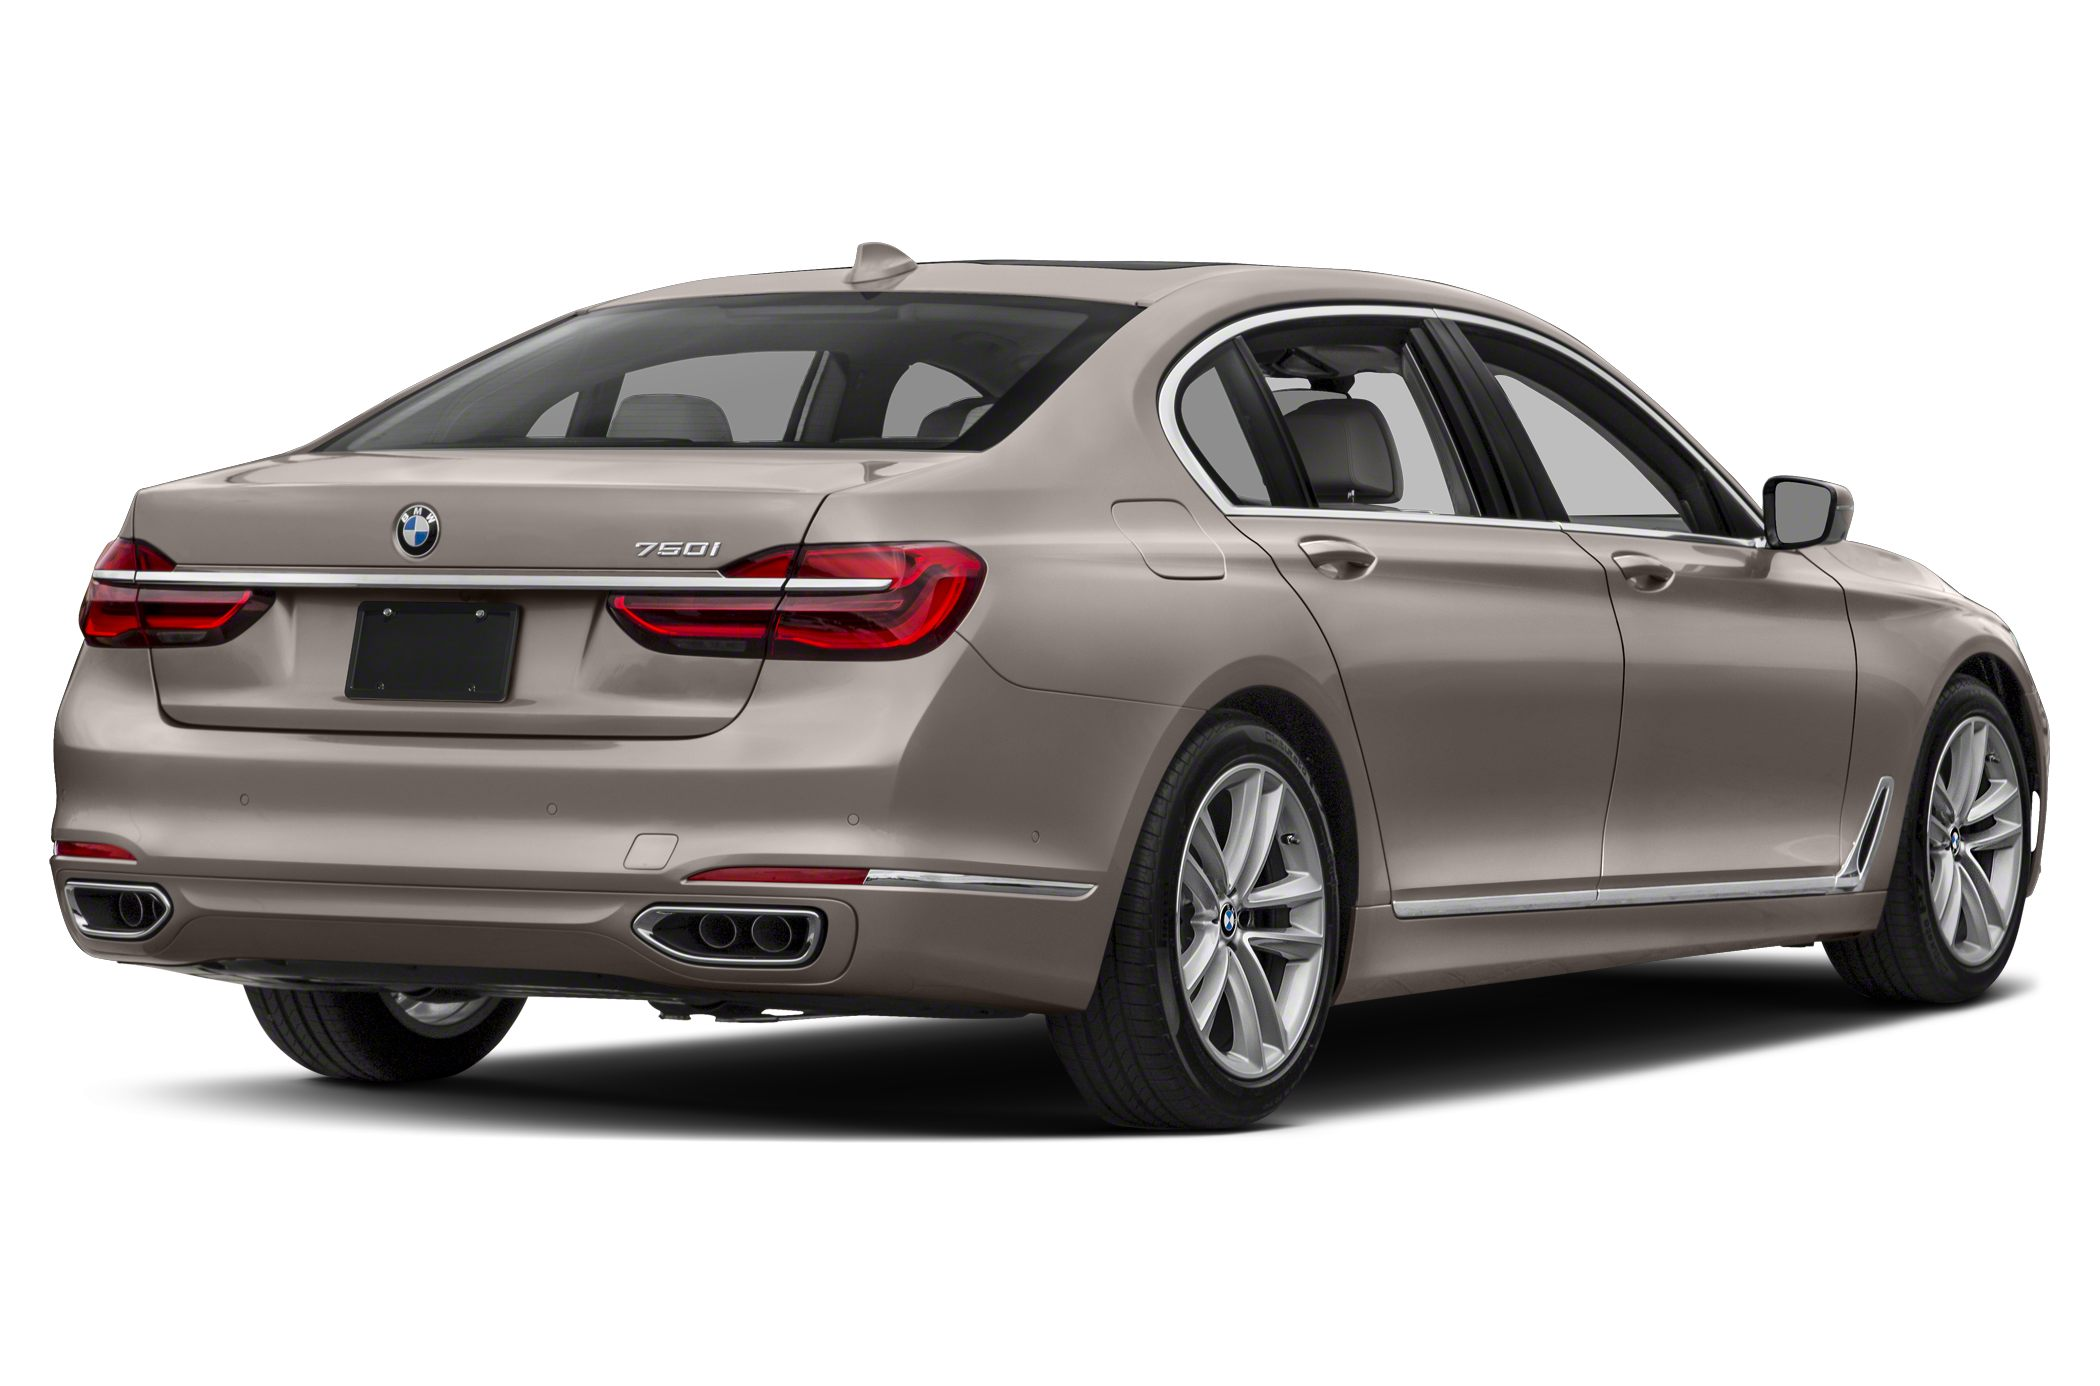 Car Seat Recall >> BMW 750 Sedan Models, Price, Specs, Reviews | Cars.com